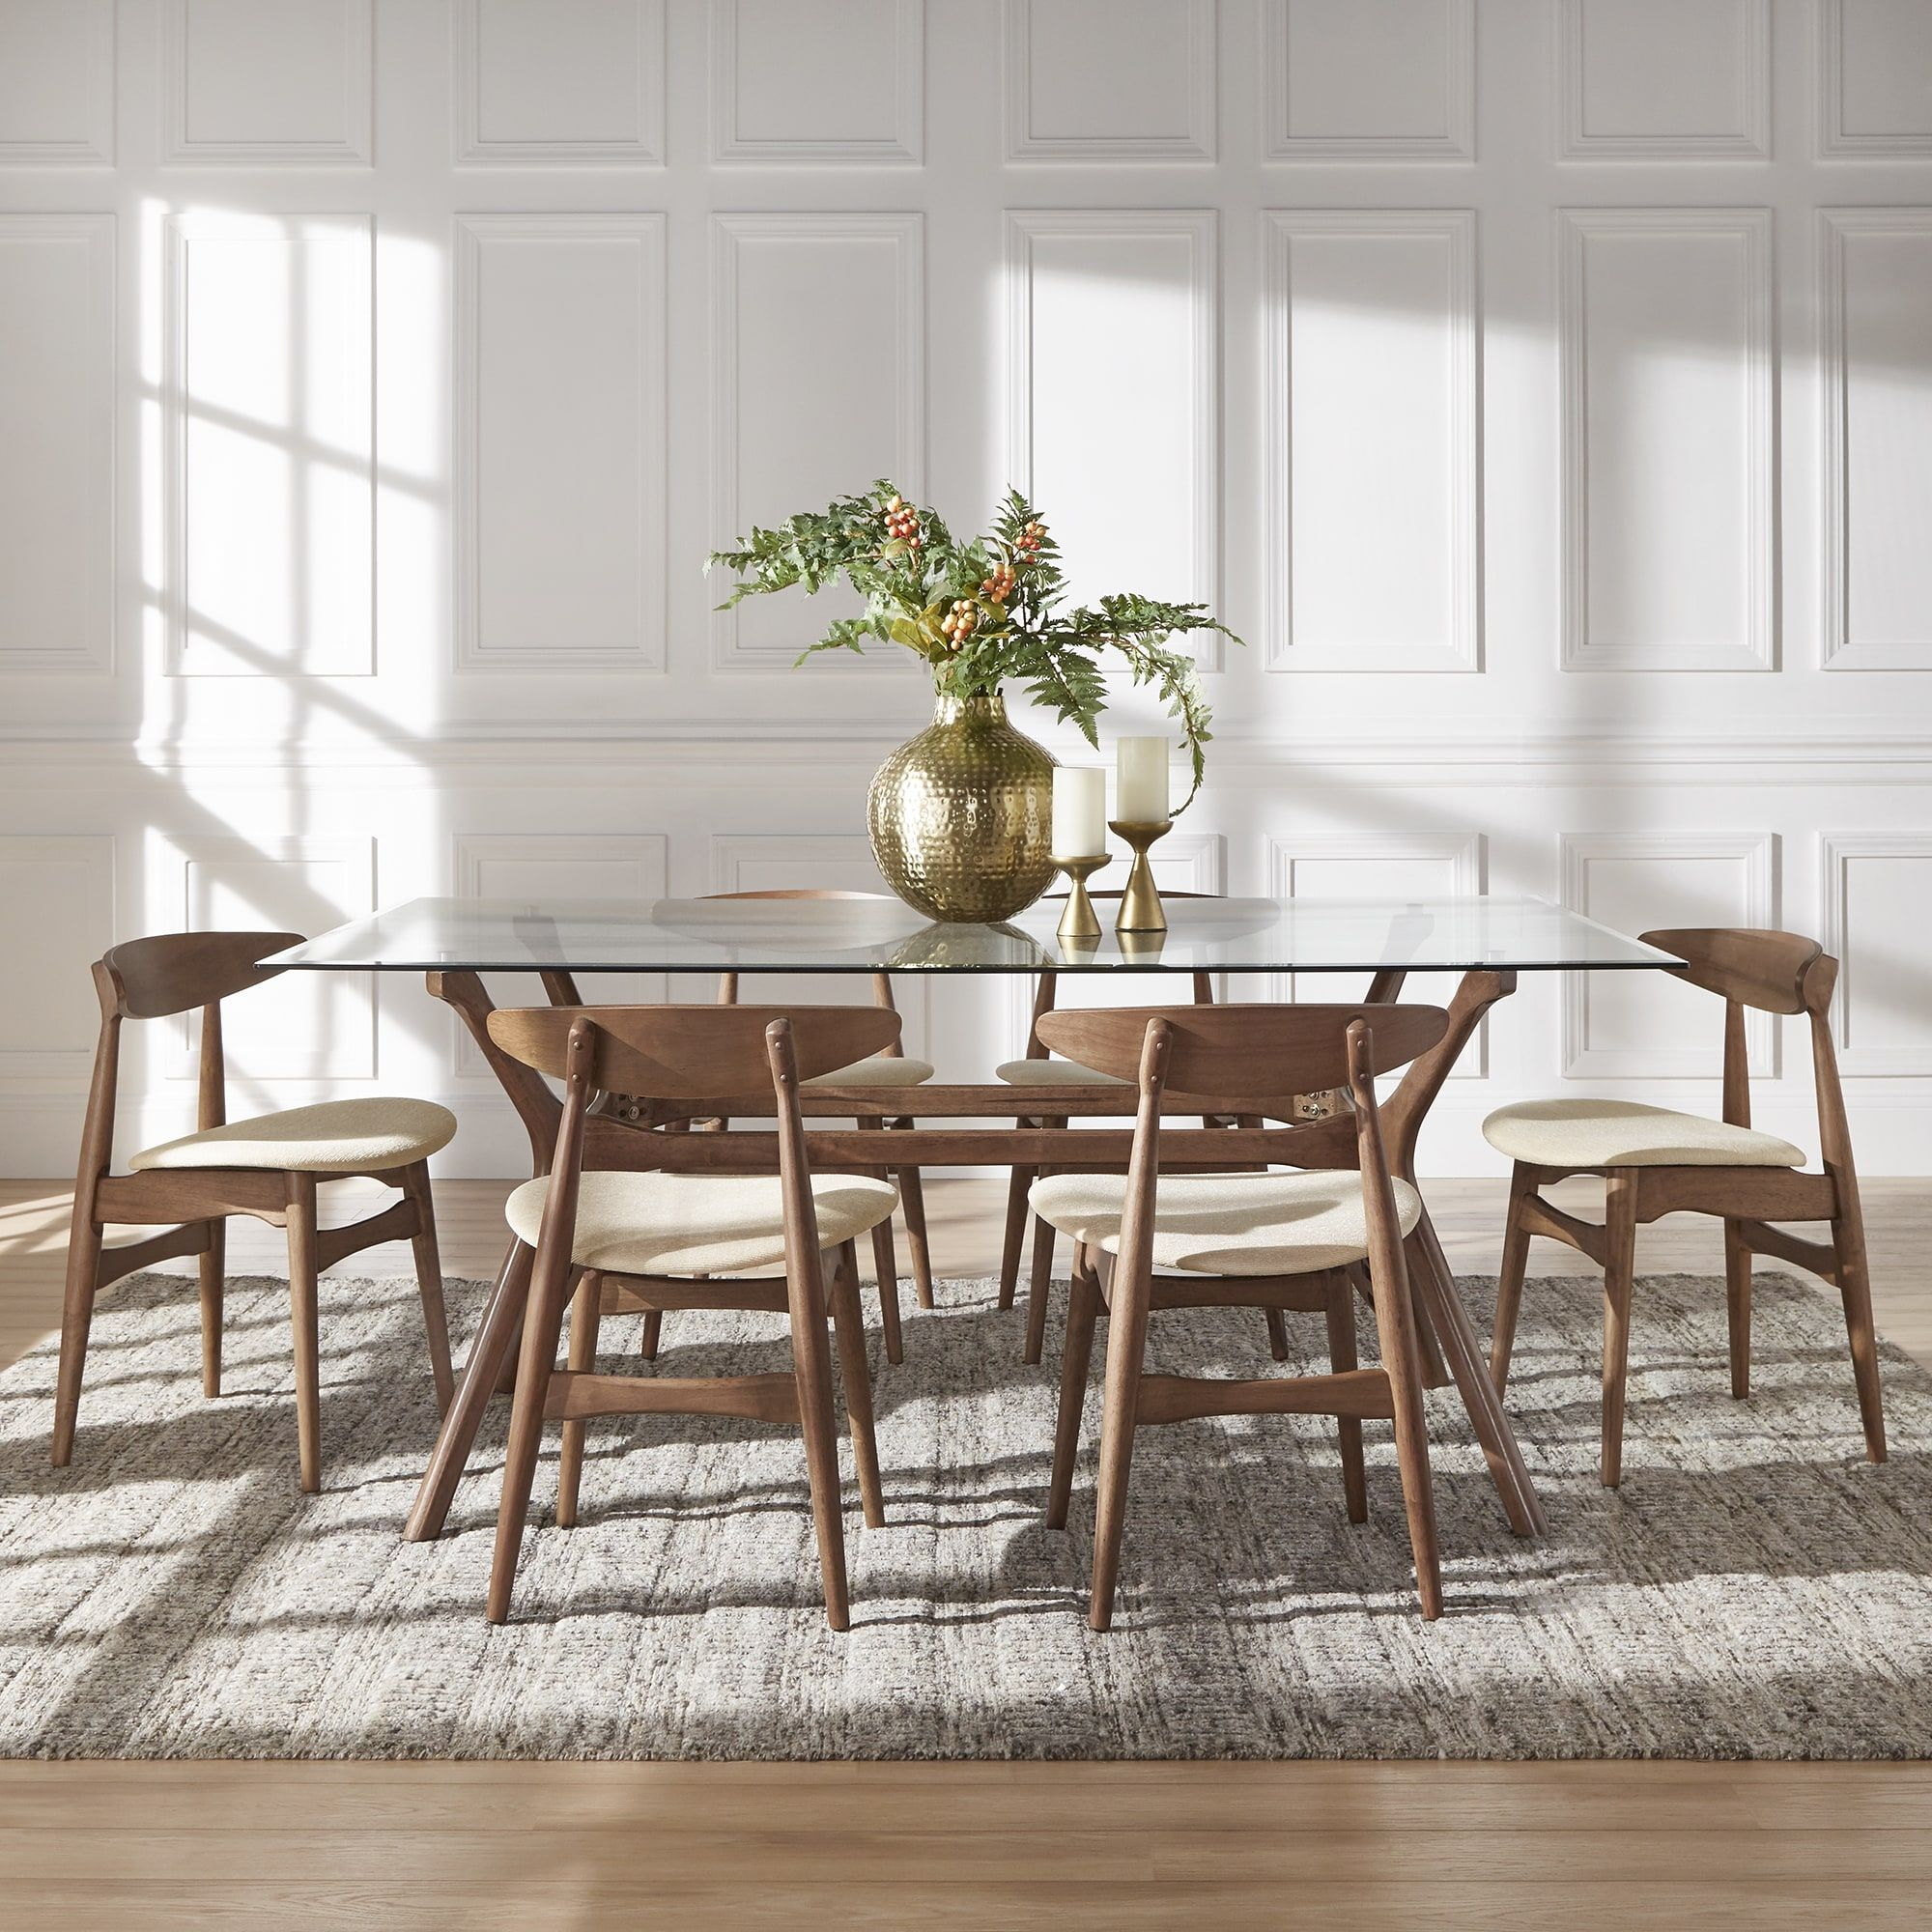 Nadine Walnut Finish Glass Table Top Rectangular Dining Set - Curved Back  Chairs by iNSPIRE Q Modern (5-Piece Set - 4 Beige Fabric Chairs), Size  5-Piece ...